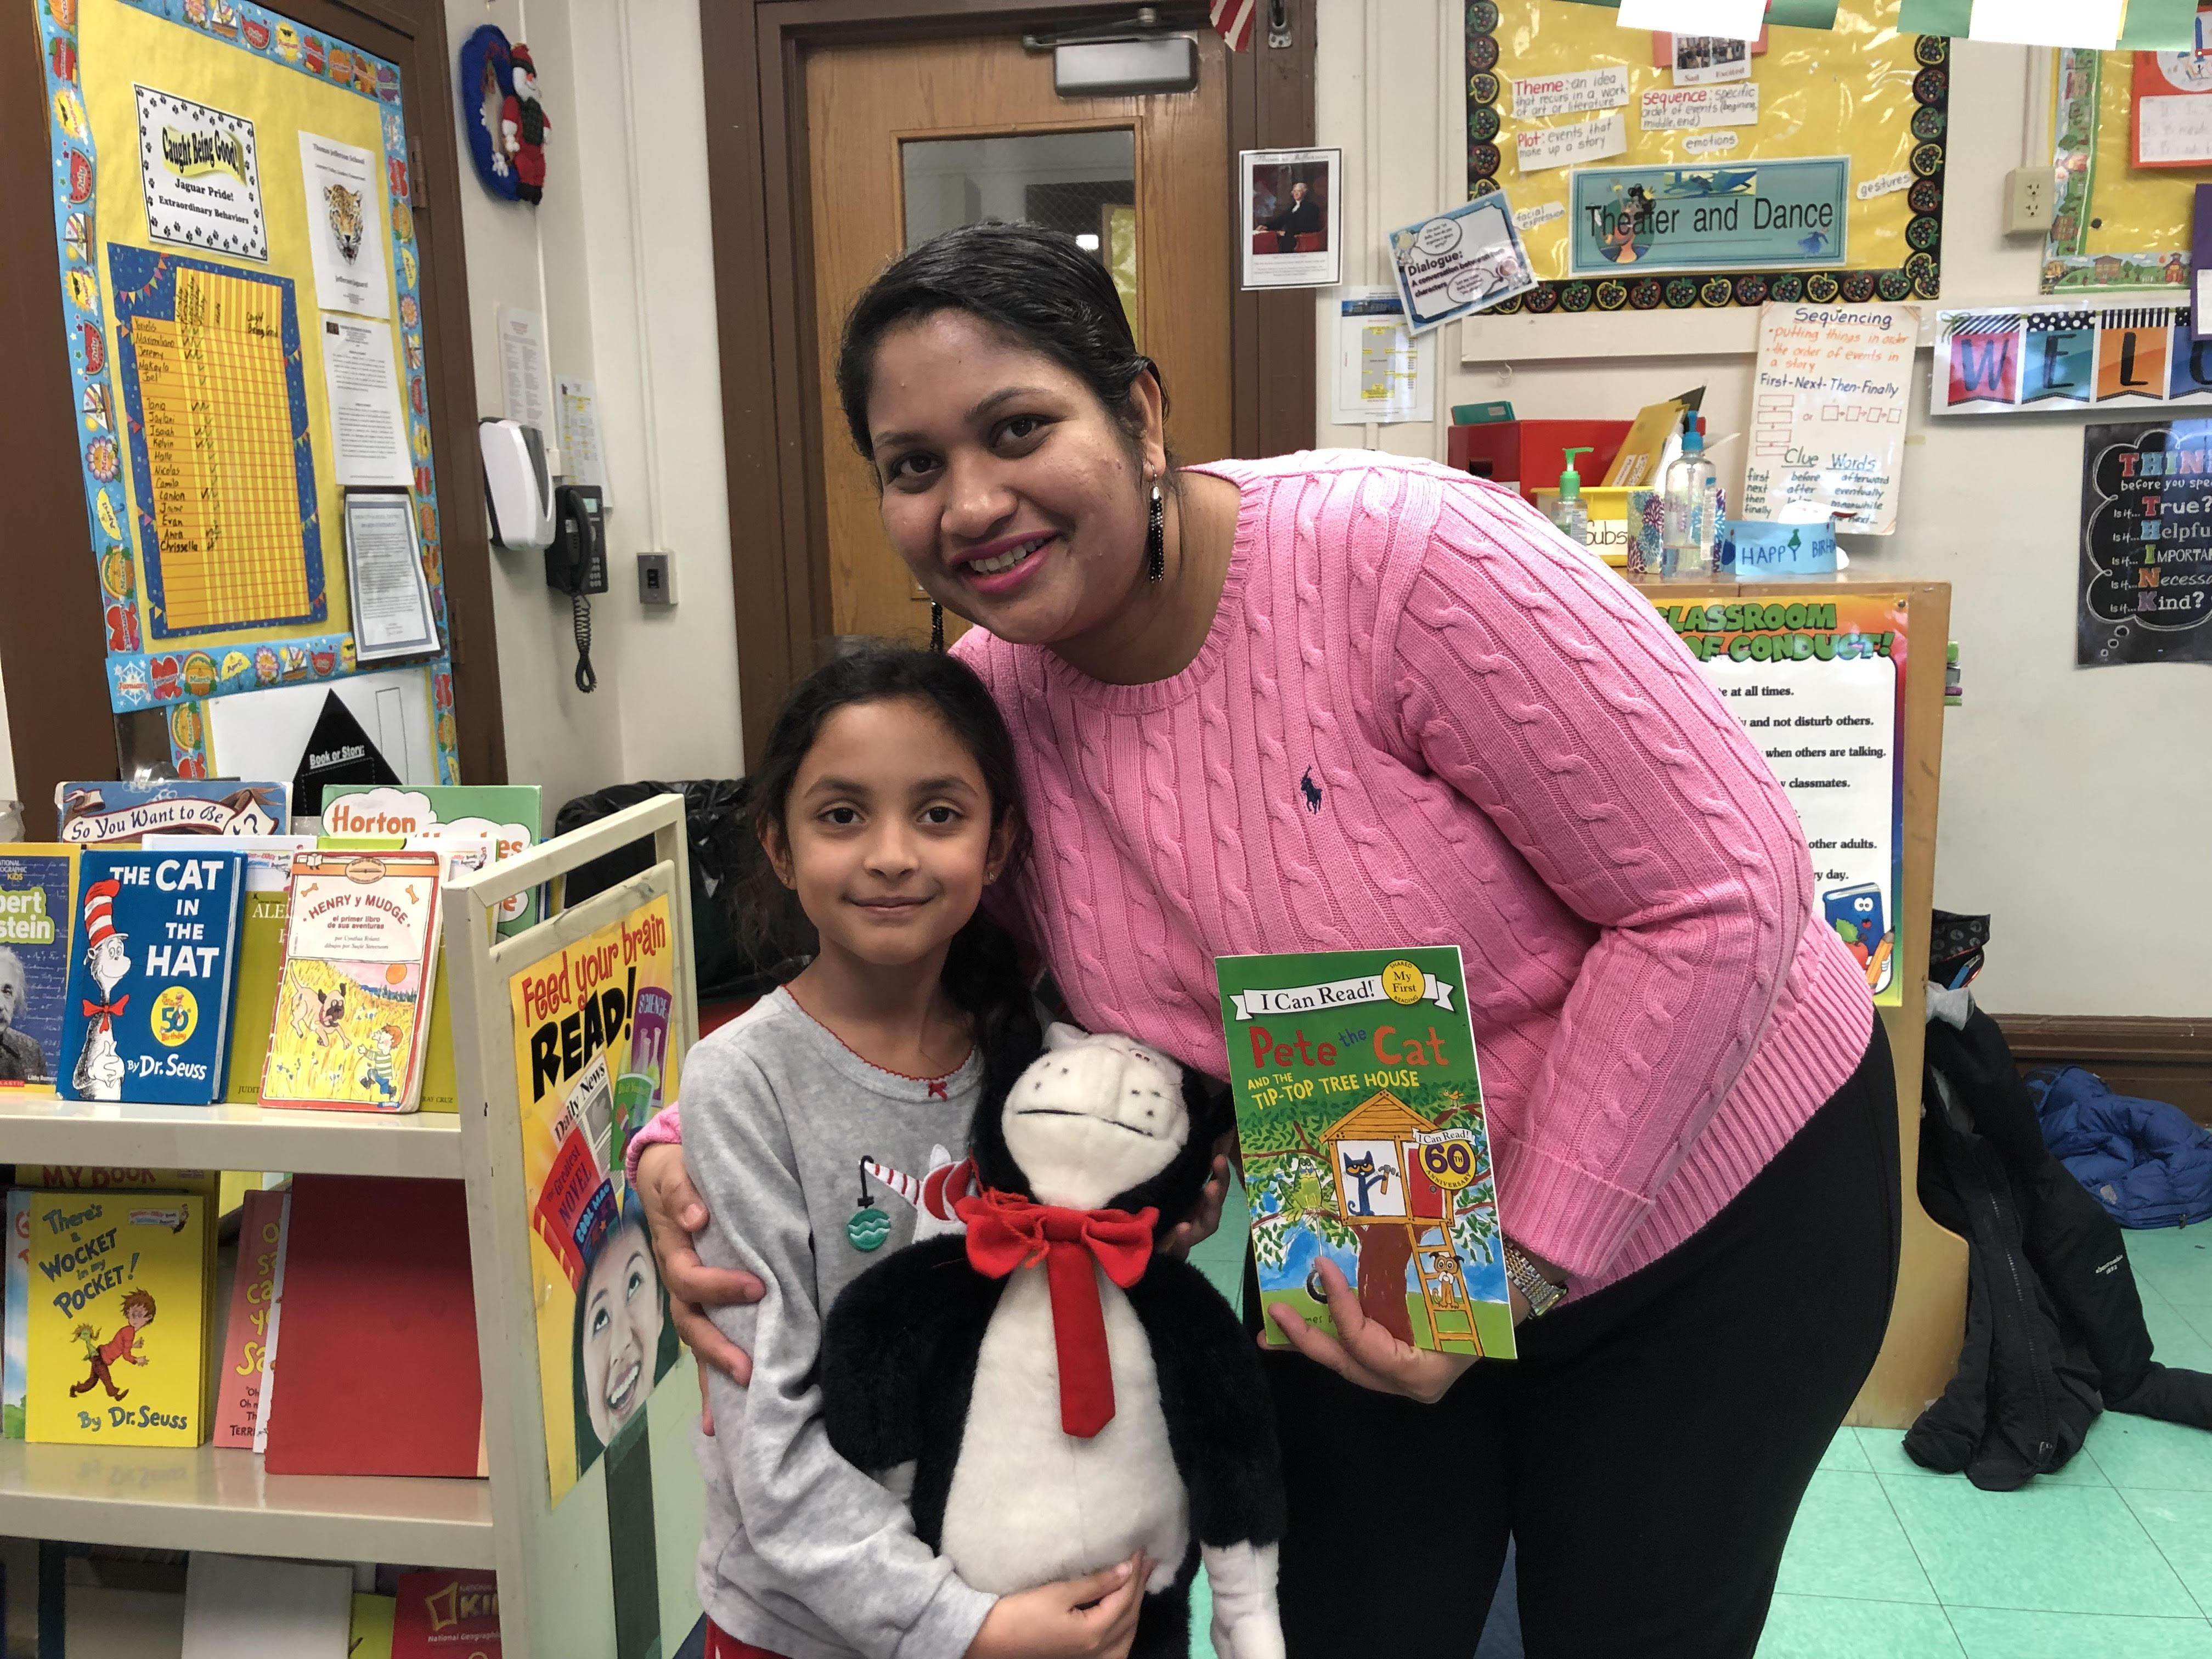 mother holding daughter who is holding a cat in the hat doll and book